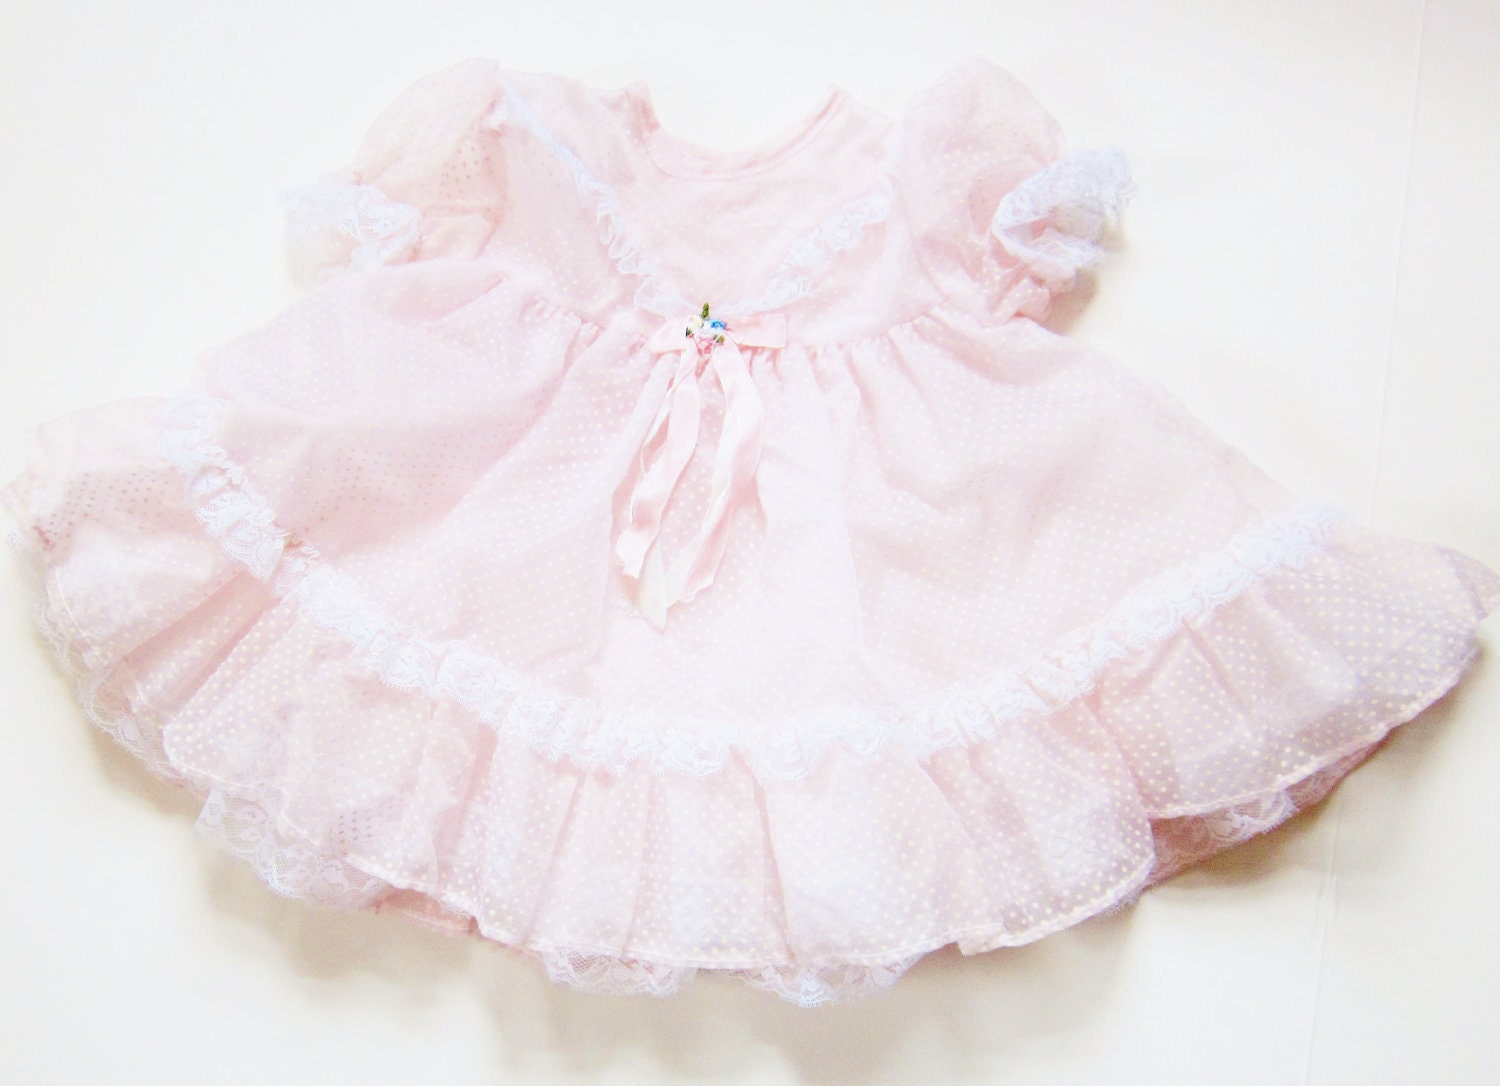 Girly Pale Pink Vintage Baby Dress 32 Year Old Doll Dress